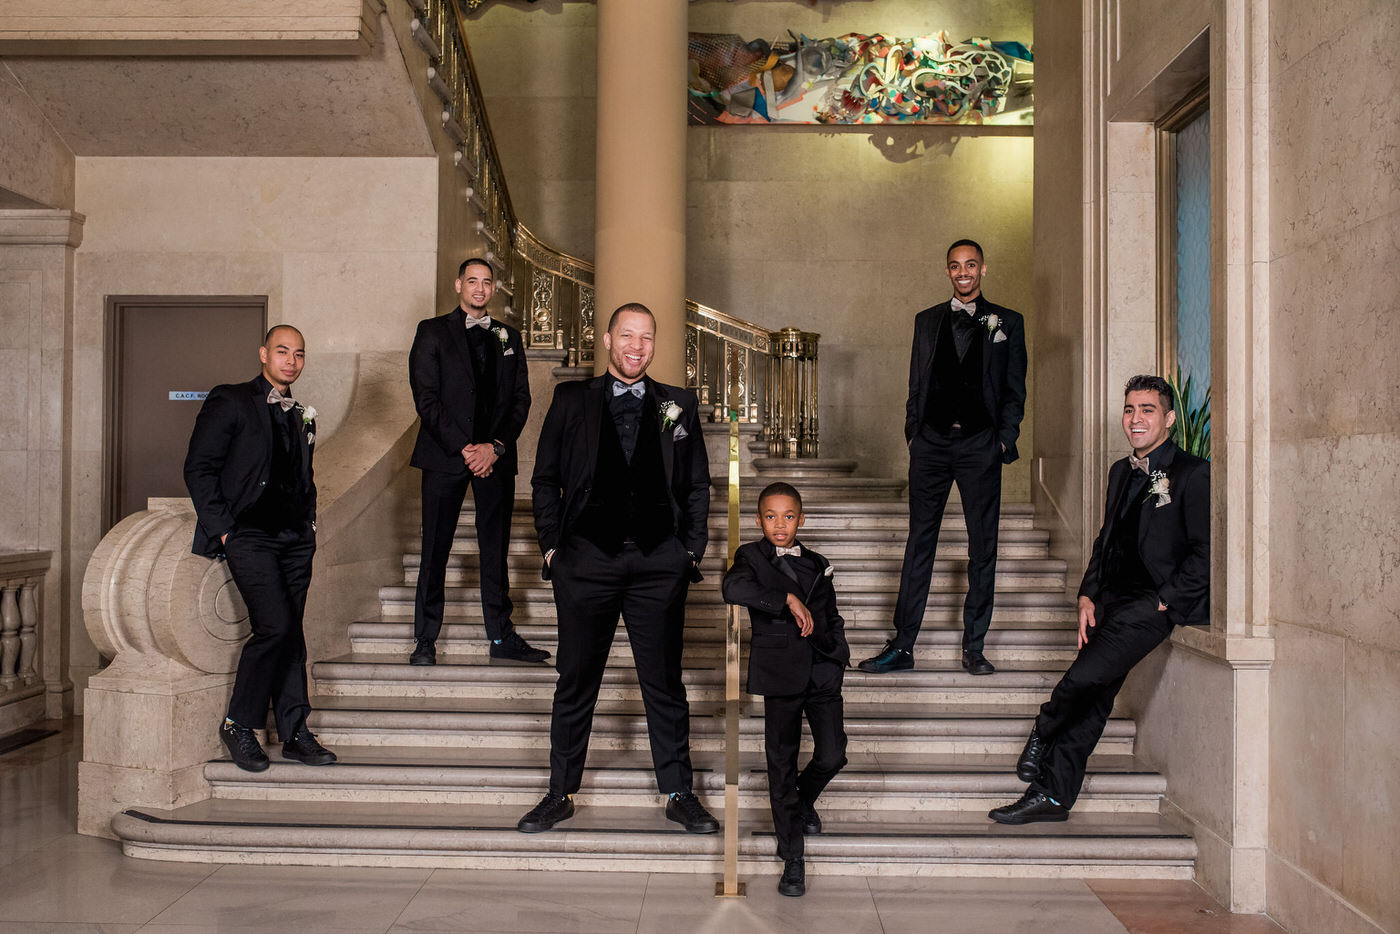 Groomsmen photo at One King West Hotel wedding